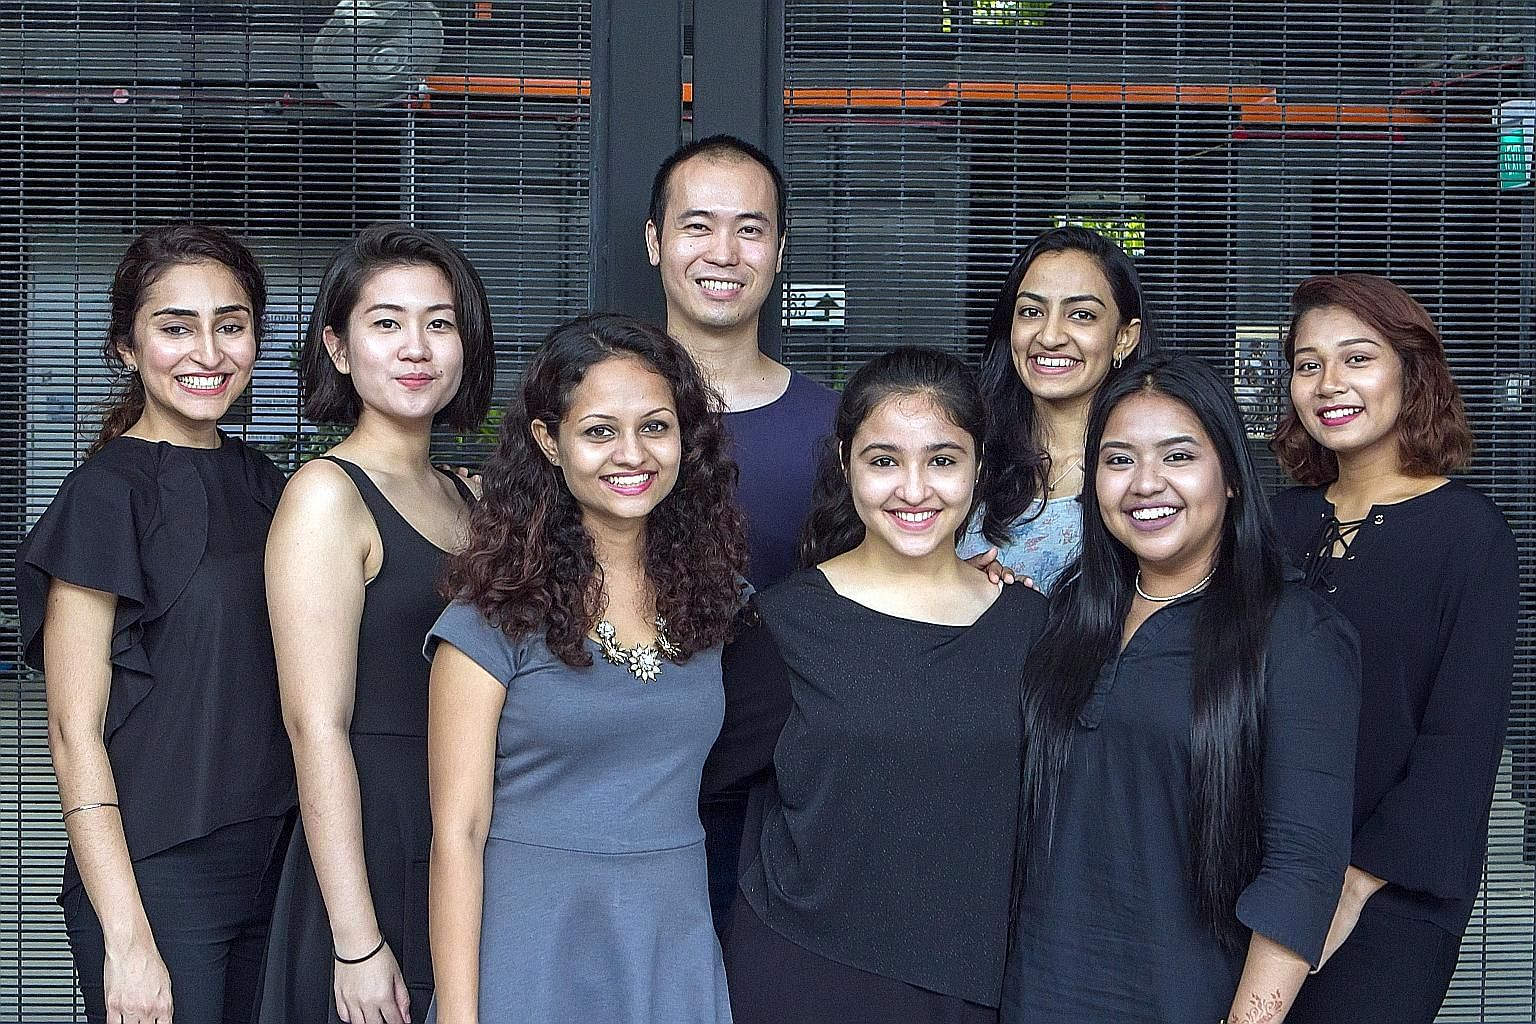 Members of the Young Storytellers Mentorship Project (from far left) Jurveen Randhawa, Phoebe Lim, Aswani Aswath, Jason Yee, Gauraangi Chopra, Suchithra Raman, Suharti Suhaimi and Farah Nurhazlinda. They were mentored by professional storyteller Kamini Ra